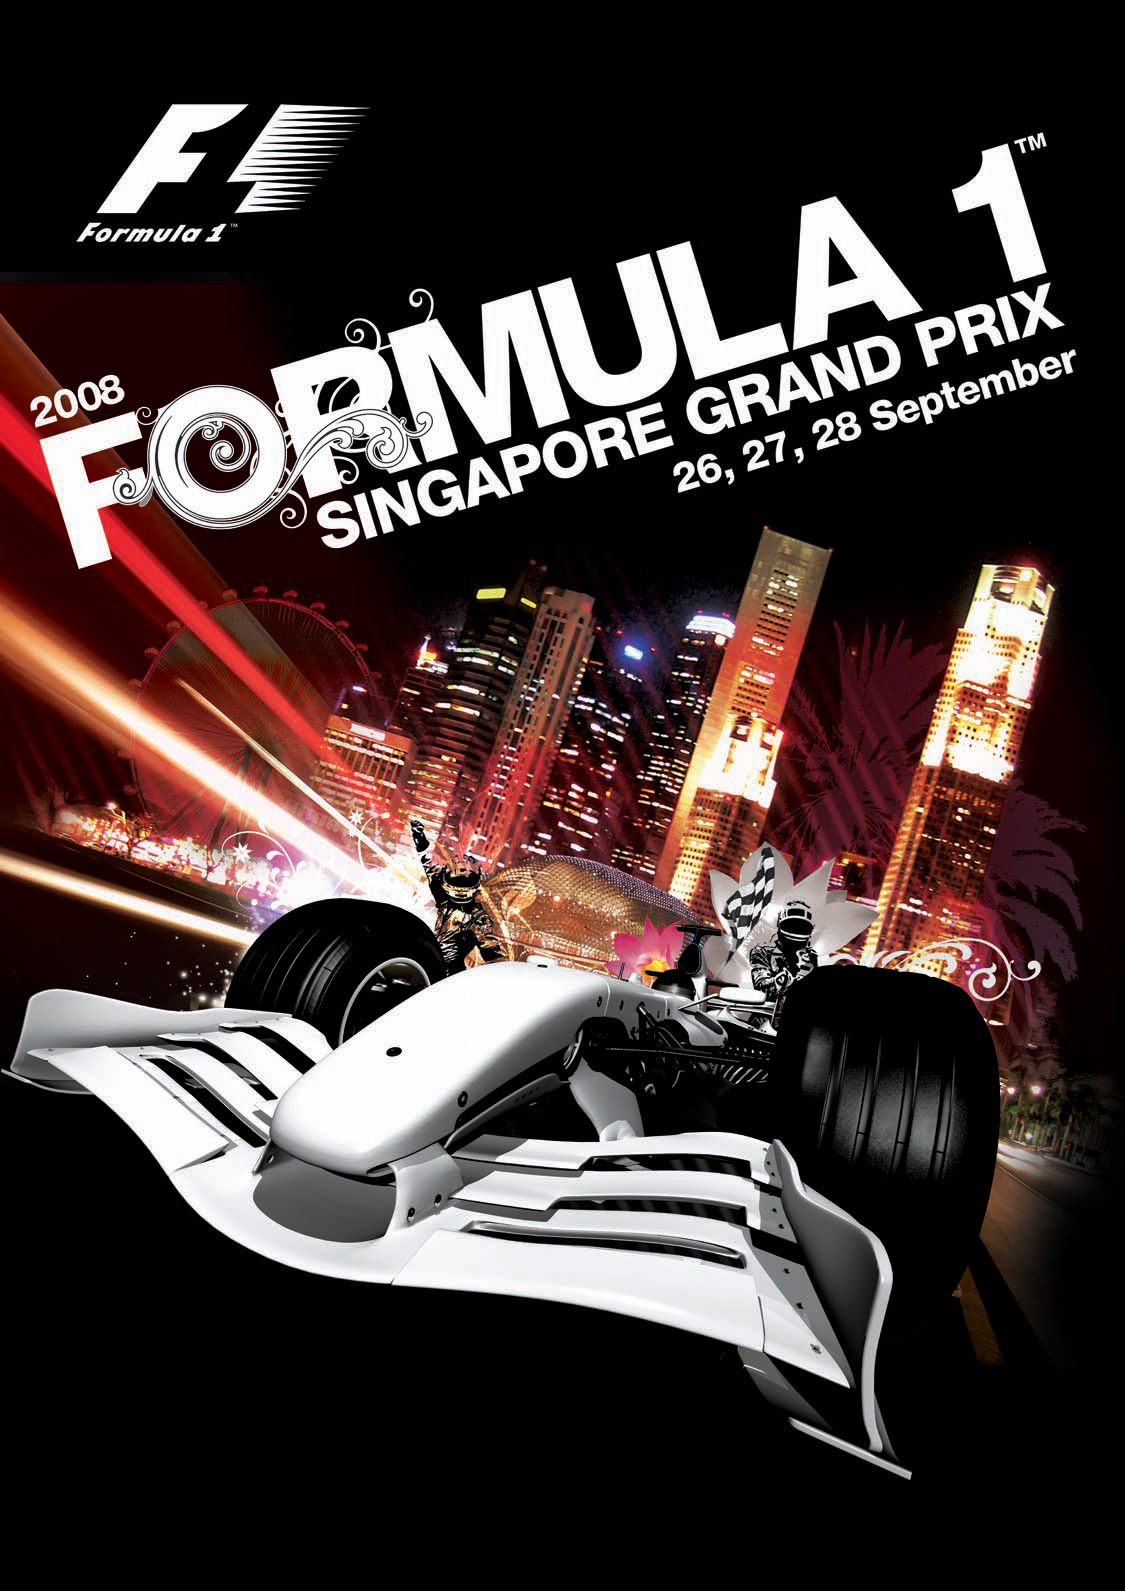 significance of the formula 1 in singapore